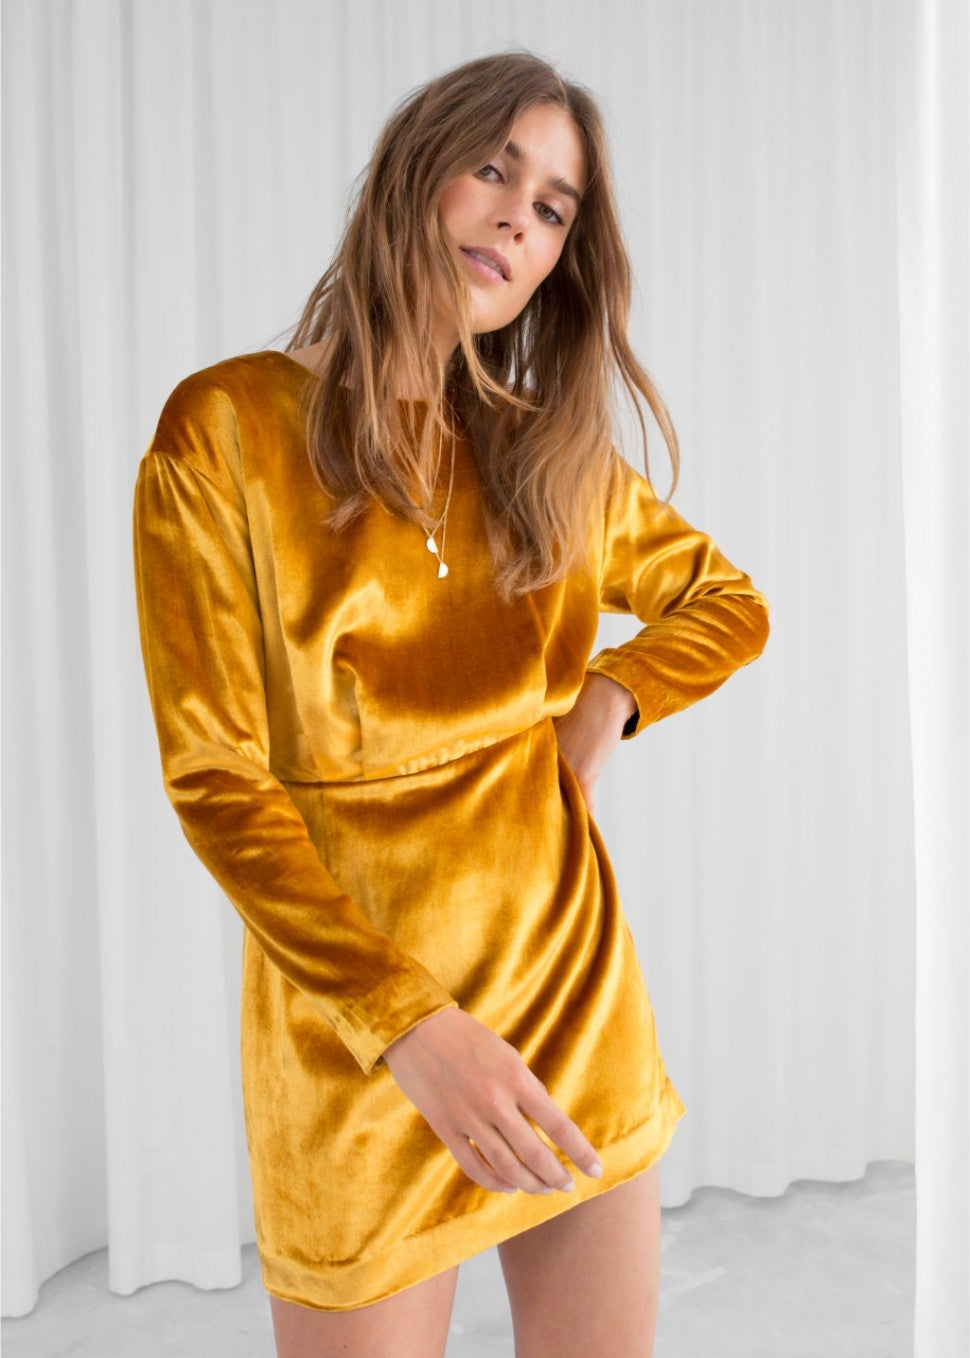 & Other Stories yellow velvet dress